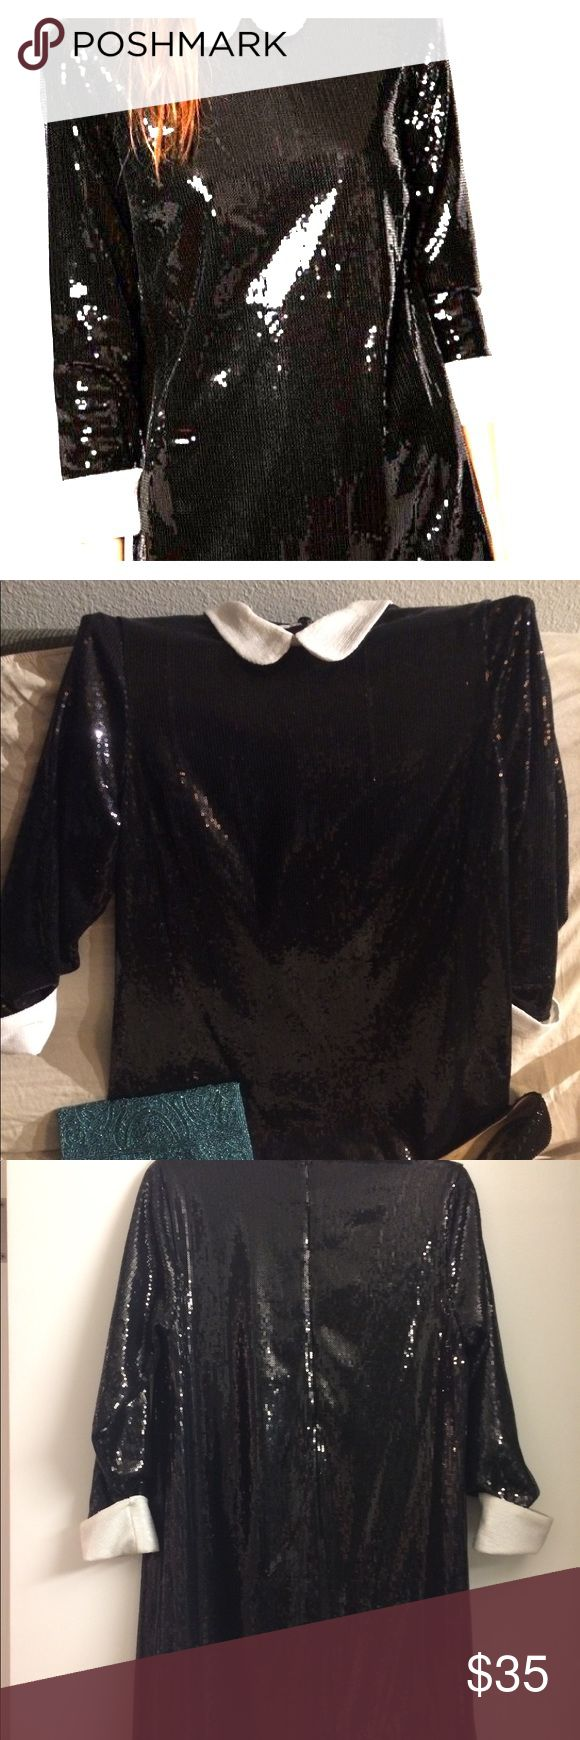 """ASOS black sequin dress with Peter Pan collar- Size: 8p Bust:  34"""" Length:  34"""" Material: 100 % polyester  Only worn twice, excellent condition. A few loose strings- still has extra thread and sequins baggies attached to cleaning tag ASOS Dresses Mini"""